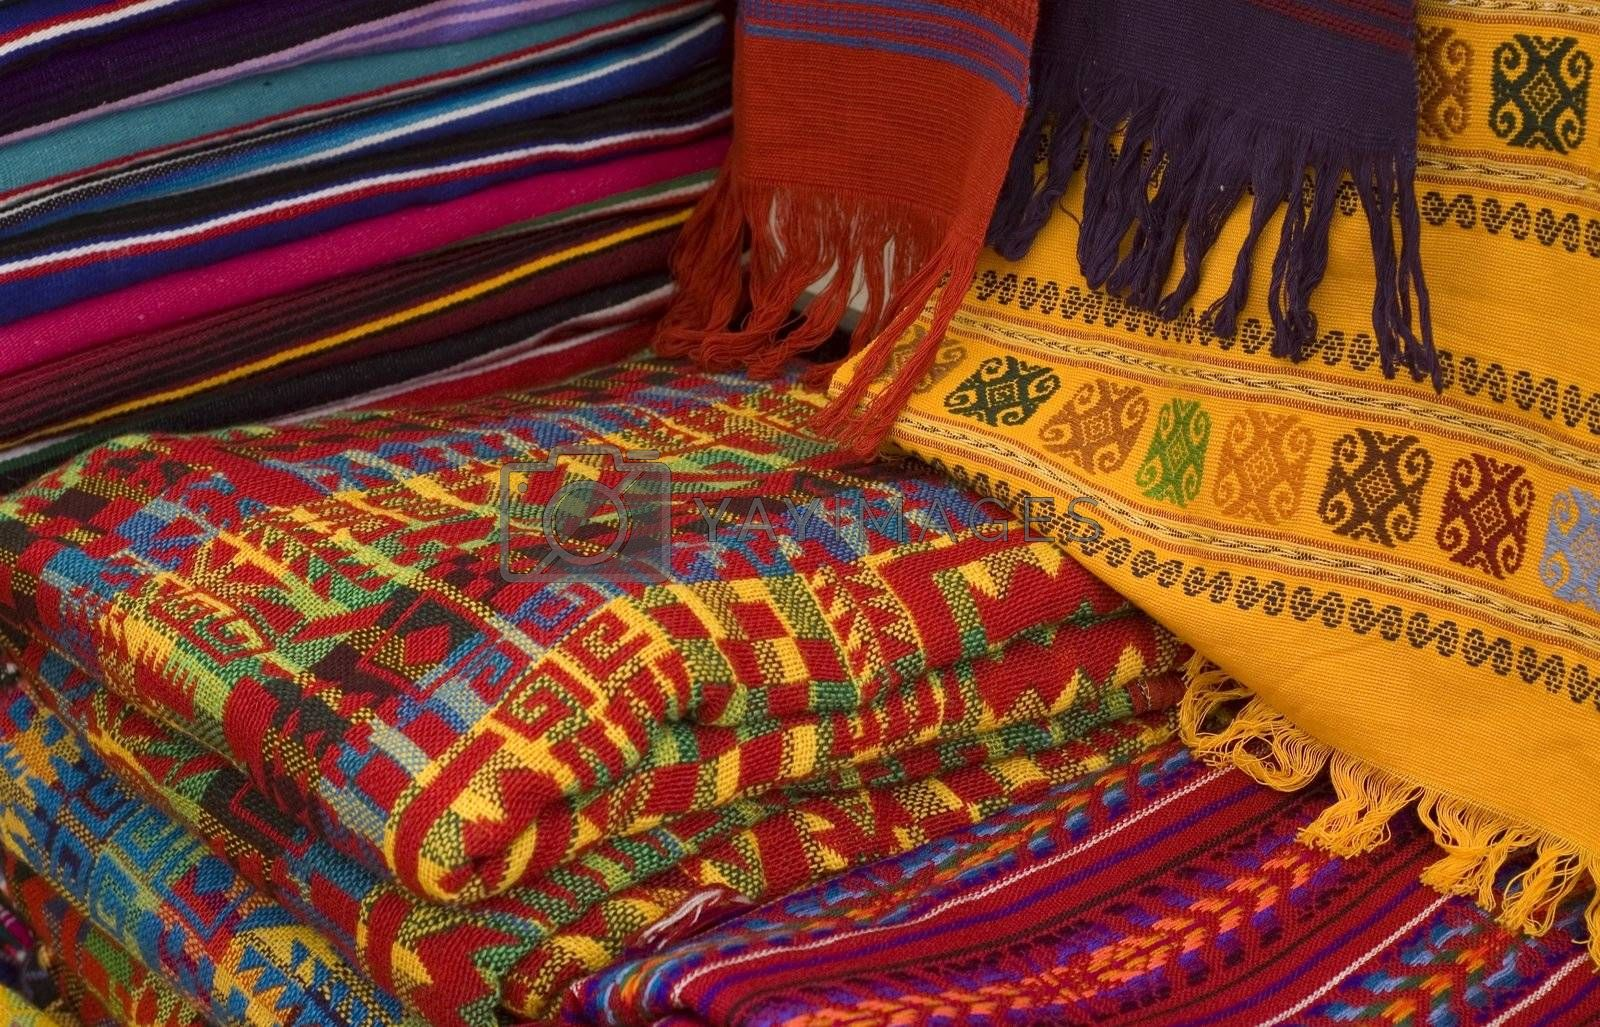 Colorful Mayan and Mexican Fabrics for sale in a Market in Chiapas, Mexico